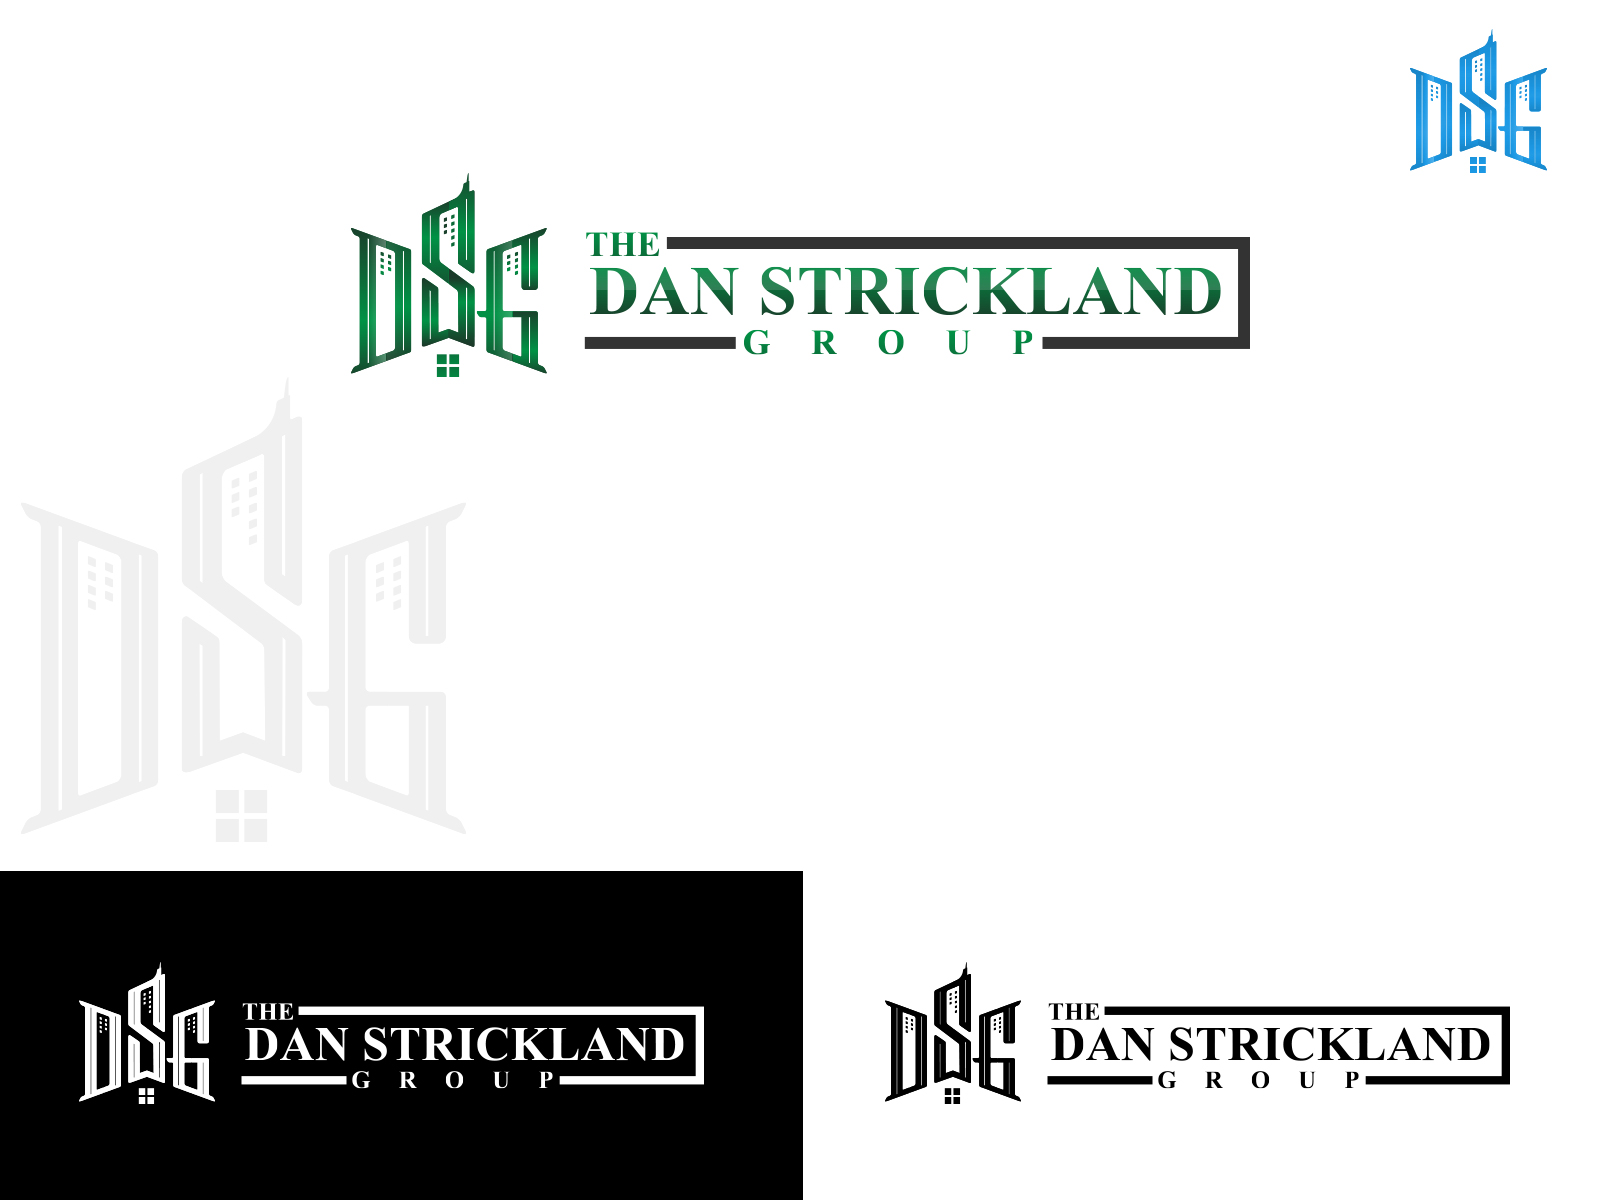 Logo Design by olii - Entry No. 334 in the Logo Design Contest Creative Logo Design for The Dan Strickland Group.